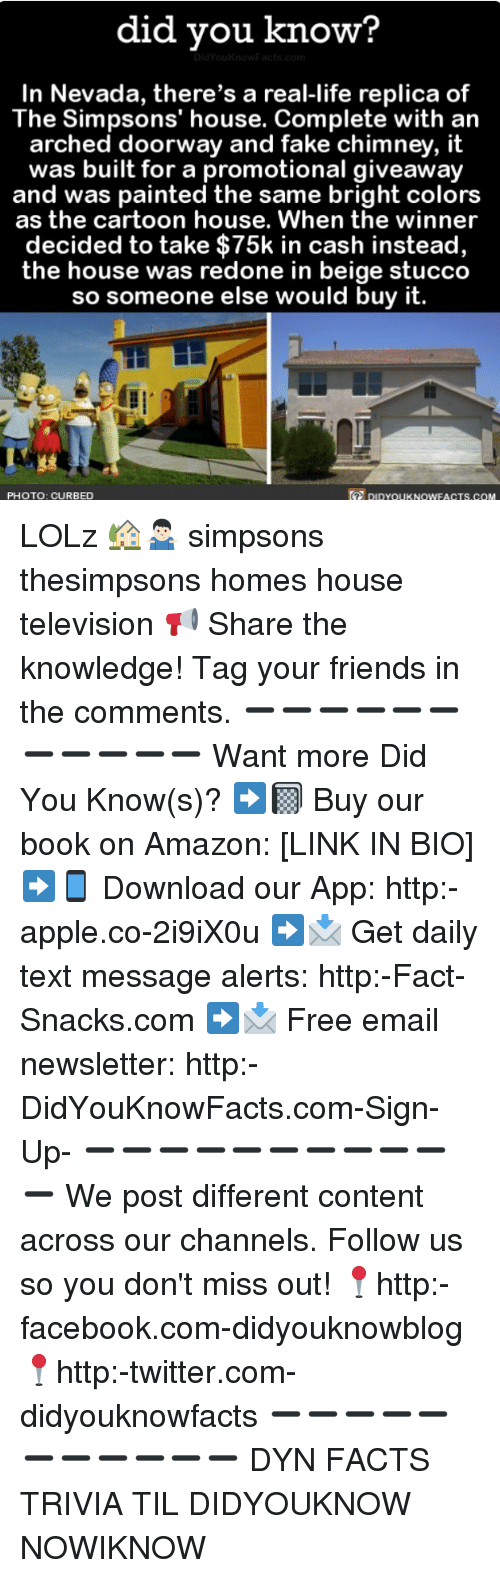 Amazon, Apple, and Facebook: did vou know?  In Nevada, there's a real-life replica of  The Simpsons' house. Complete with an  arched doorway and fake chimney, it  was built for a promotional giveaway  and was painted the same bright colors  as the cartoon house. When the winner  decided to take $75k in cash instead,  the house was redone in beige stucco  so someone else would buy it.  PHOTO: CURBED  DIDYoUKNOWFACTS.COM LOLz 🏡🤷🏻‍♂️ simpsons thesimpsons homes house television 📢 Share the knowledge! Tag your friends in the comments. ➖➖➖➖➖➖➖➖➖➖➖ Want more Did You Know(s)? ➡📓 Buy our book on Amazon: [LINK IN BIO] ➡📱 Download our App: http:-apple.co-2i9iX0u ➡📩 Get daily text message alerts: http:-Fact-Snacks.com ➡📩 Free email newsletter: http:-DidYouKnowFacts.com-Sign-Up- ➖➖➖➖➖➖➖➖➖➖➖ We post different content across our channels. Follow us so you don't miss out! 📍http:-facebook.com-didyouknowblog 📍http:-twitter.com-didyouknowfacts ➖➖➖➖➖➖➖➖➖➖➖ DYN FACTS TRIVIA TIL DIDYOUKNOW NOWIKNOW